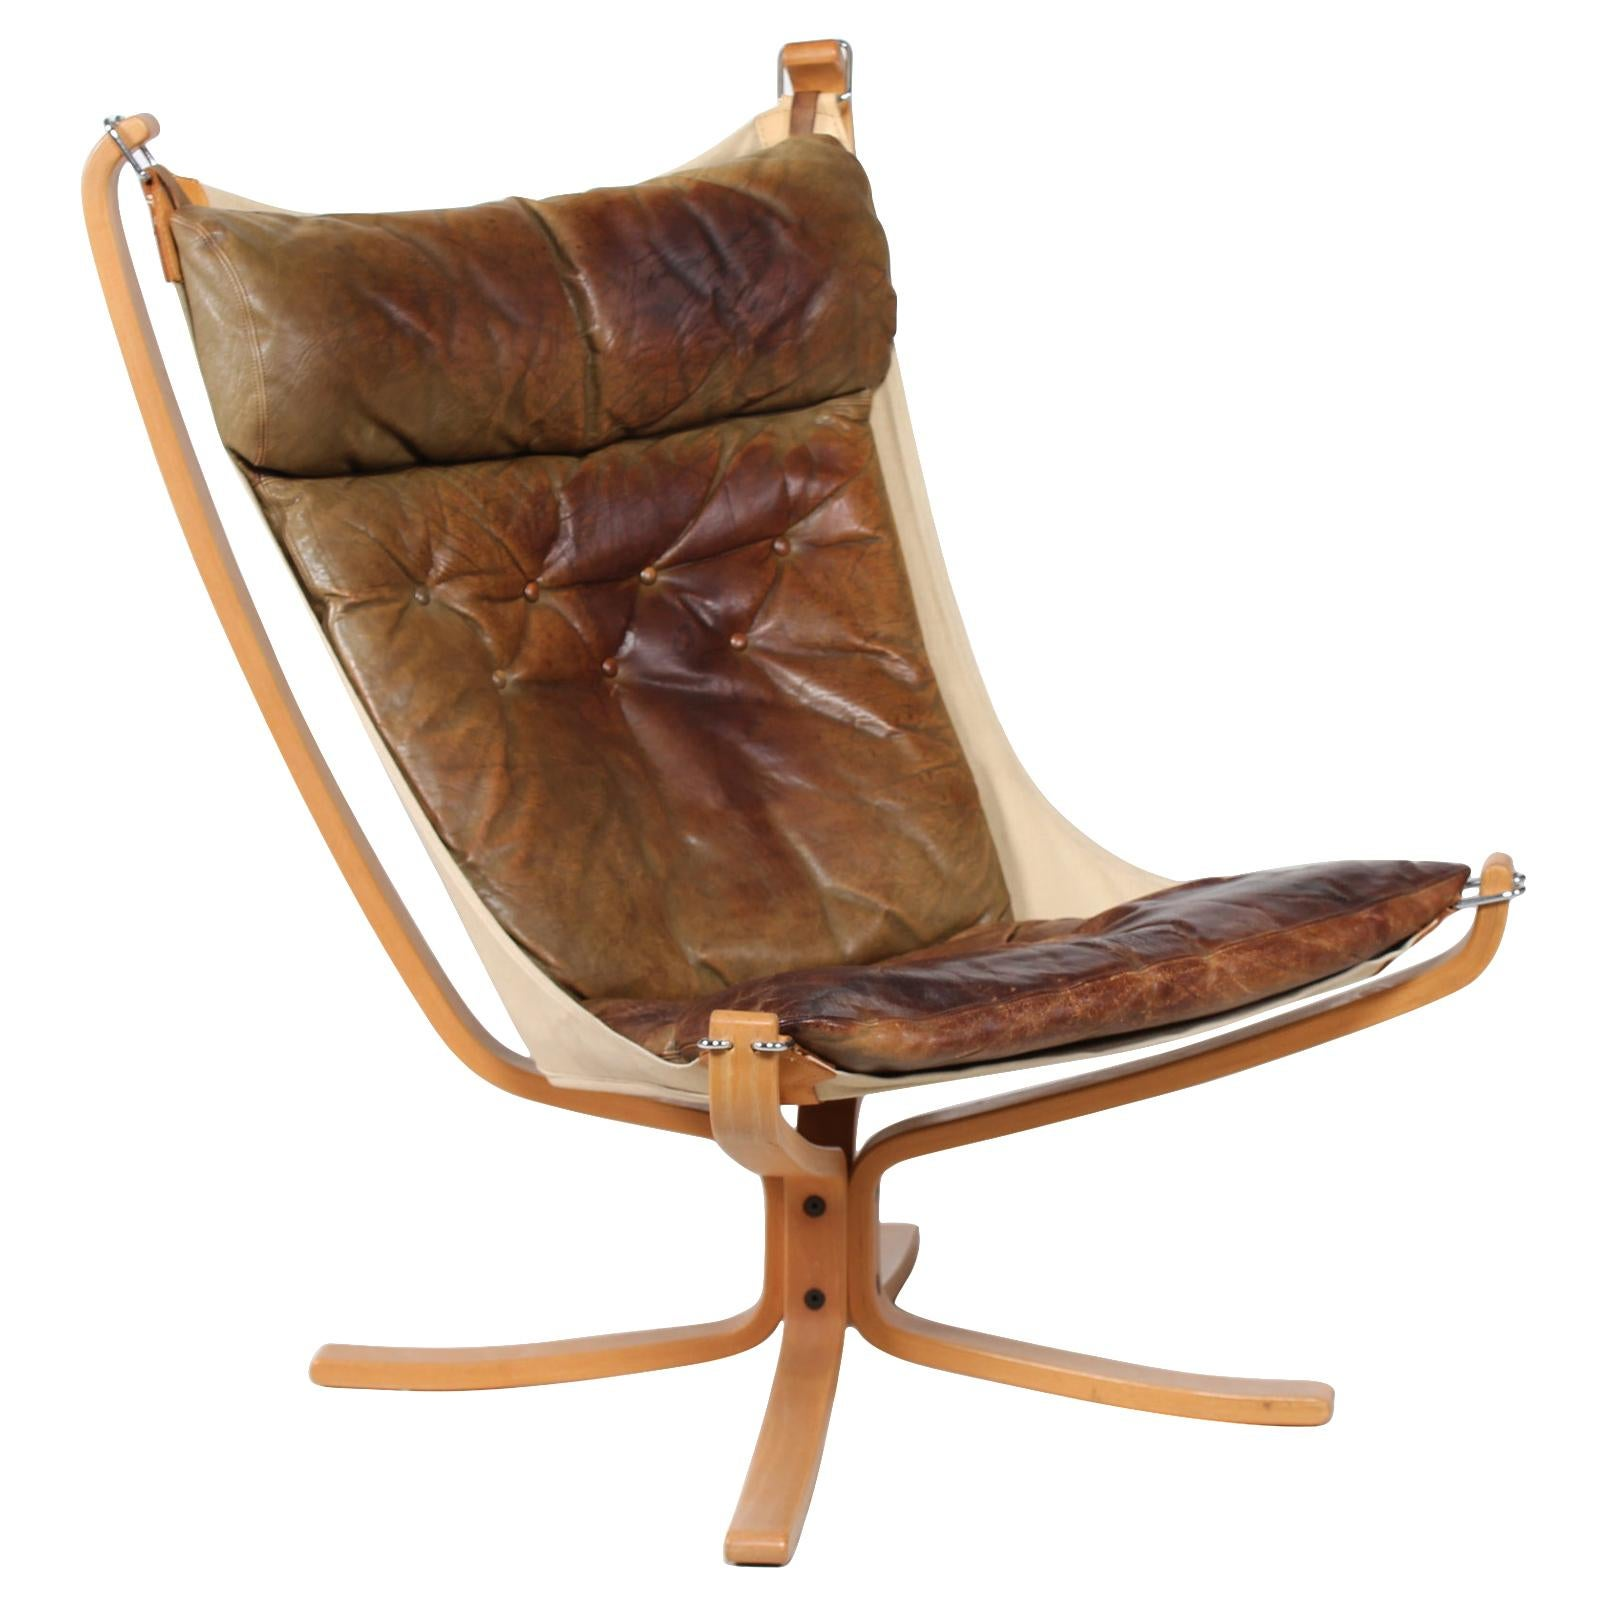 Sigurd Ressell Falcon Chair with Brown Leather Cushions by Vatne Møbler Norway